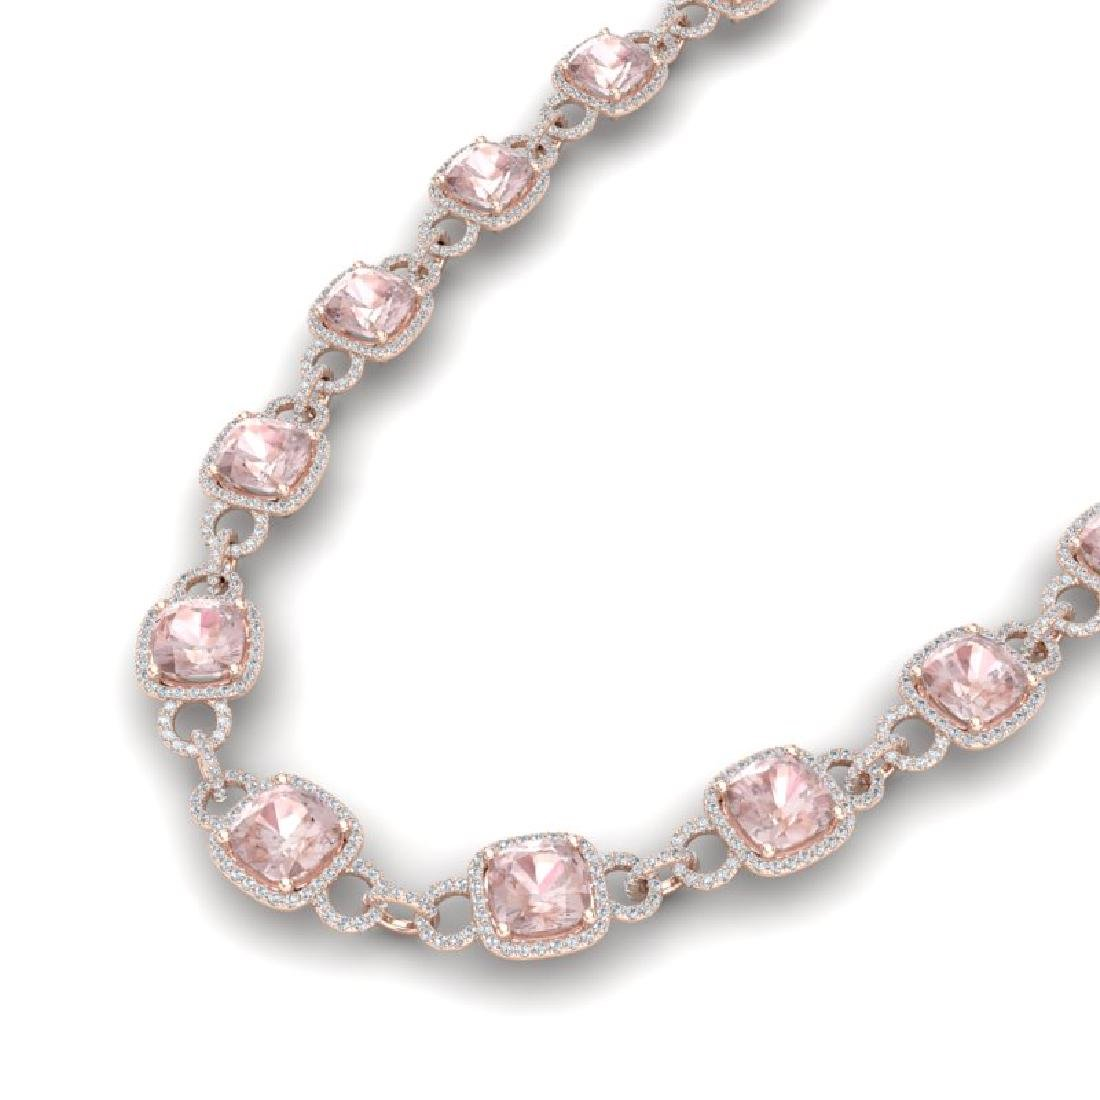 49 CTW Morganite & VS/SI Diamond Necklace 14K Rose Gold